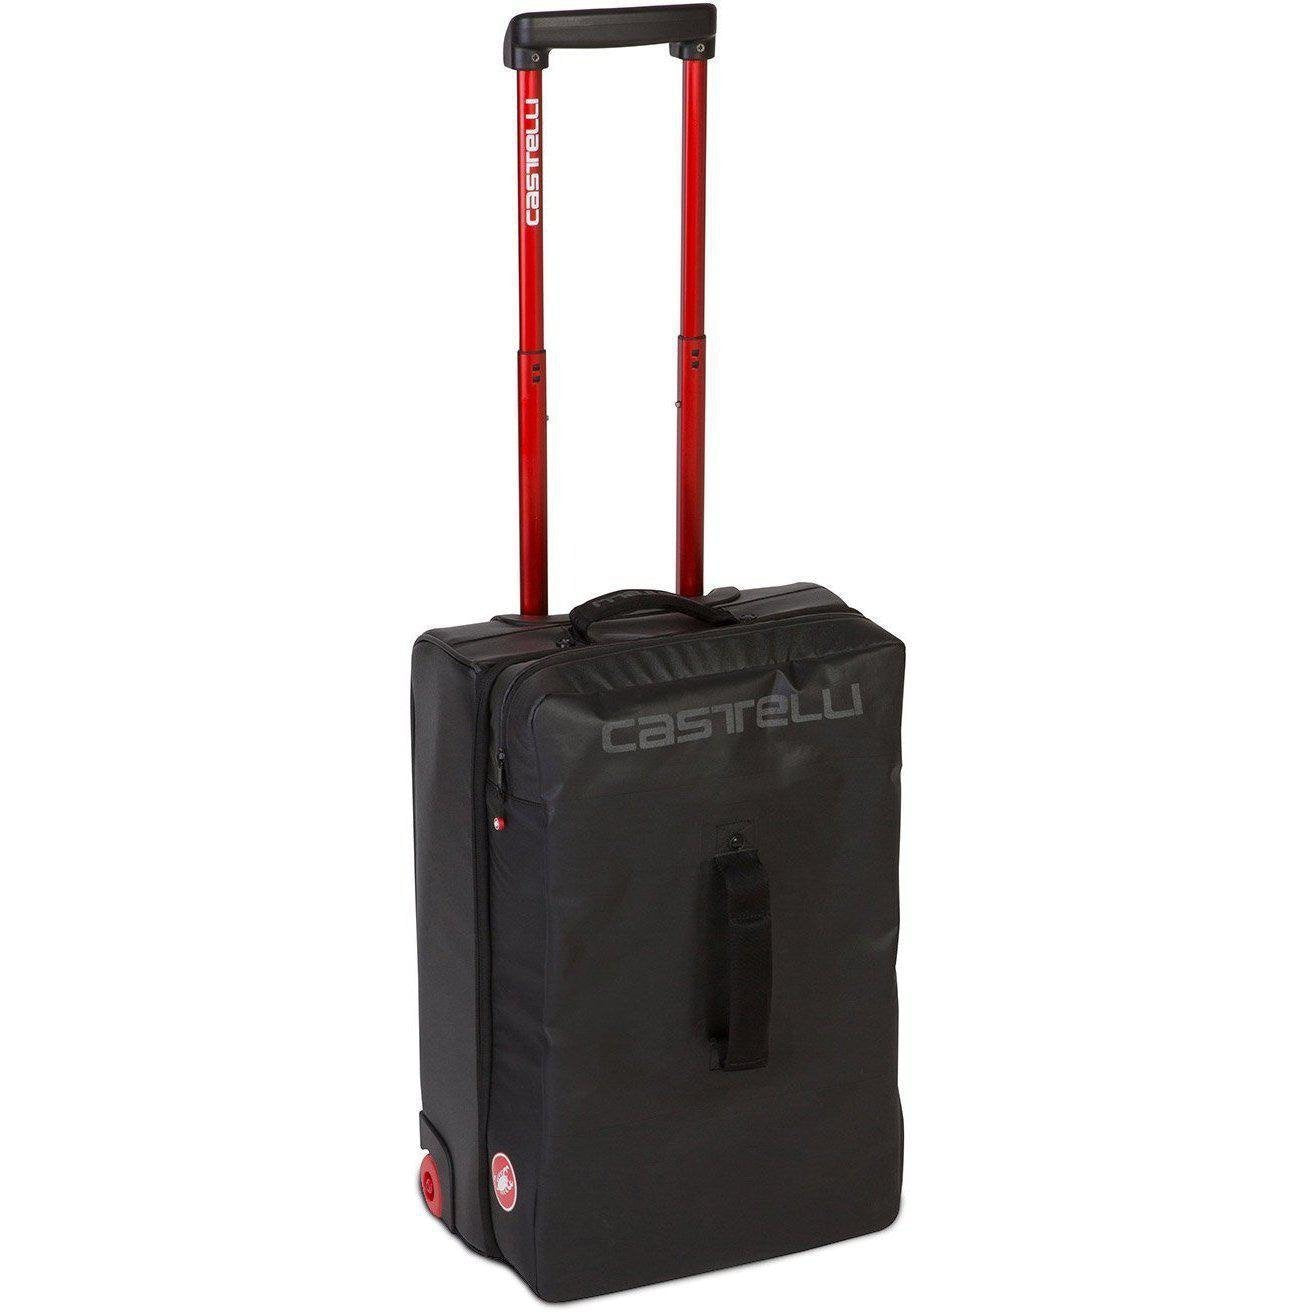 Castelli-Castelli Rolling Travel Bag-Black-CS8900100-saddleback-elite-performance-cycling